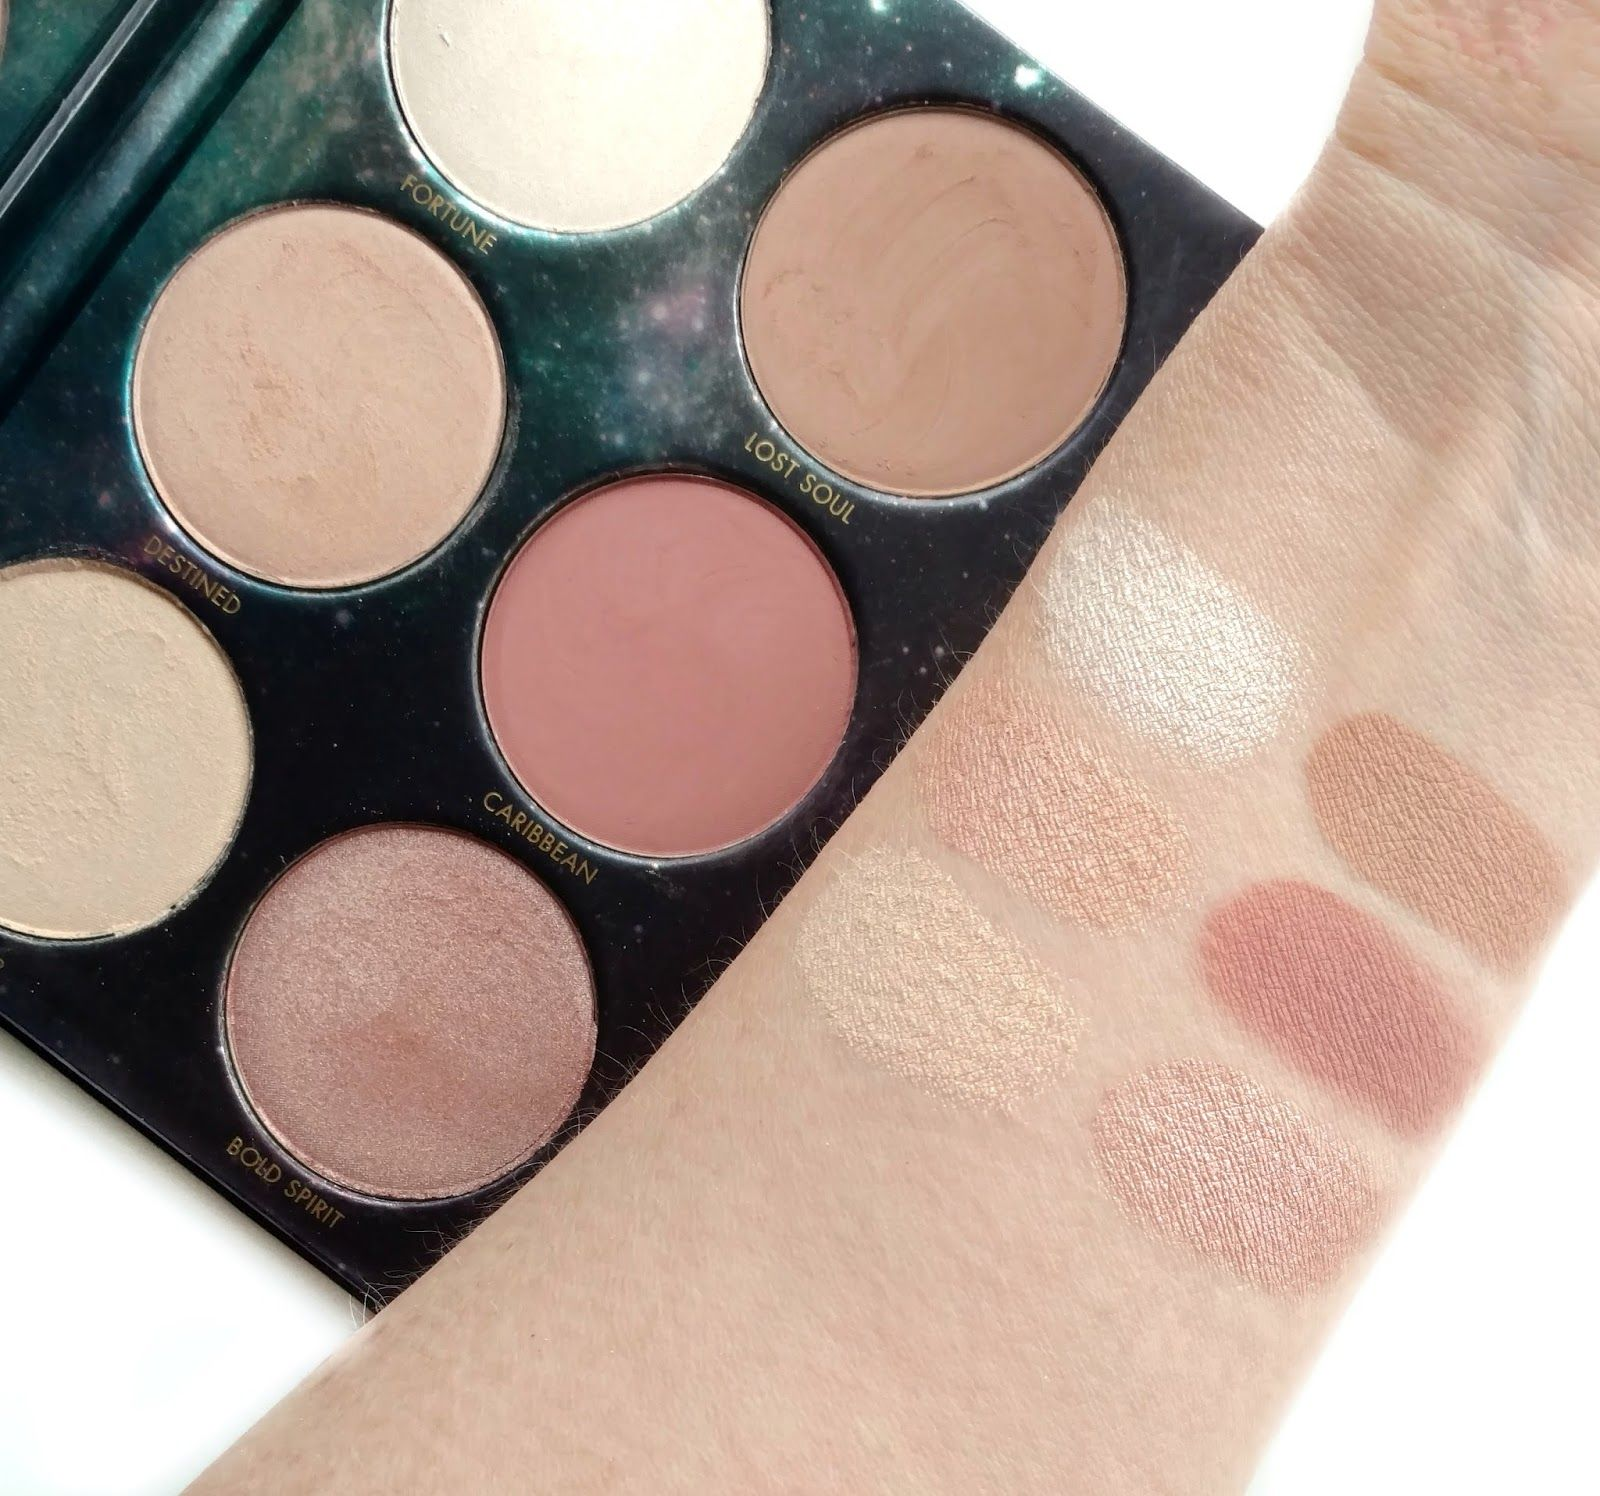 Hair3 and Beauty standout products from lorac new photo